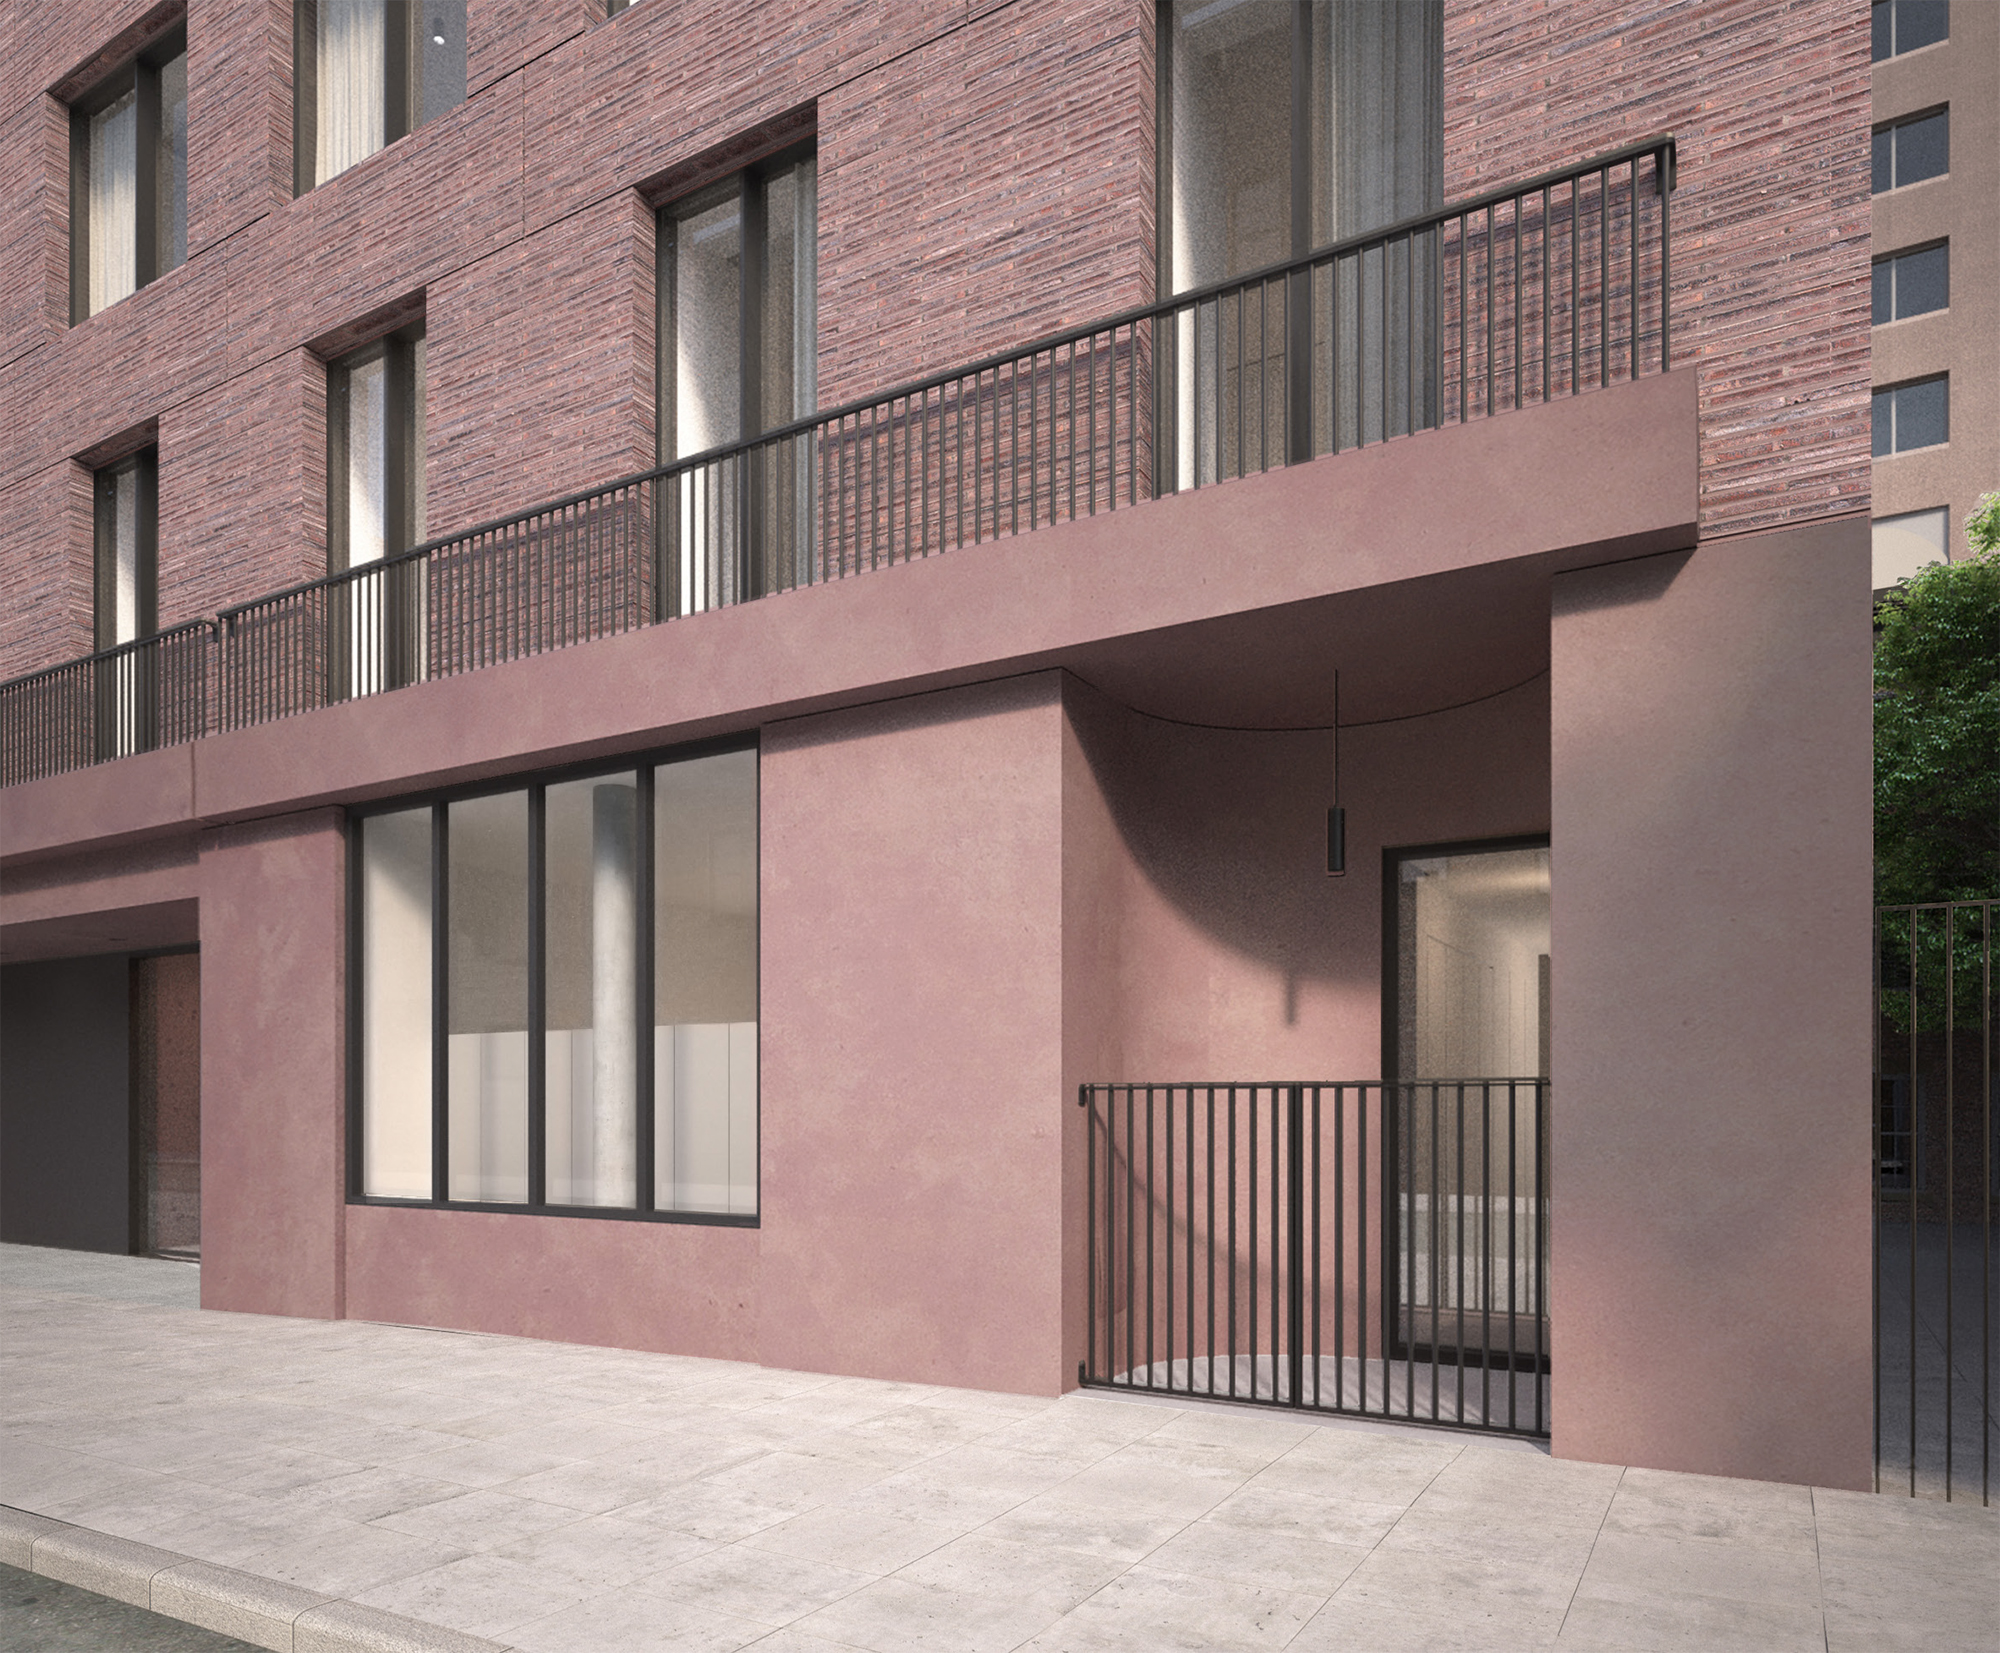 The latest proposal for 11-19 Jane Street, by Sir David Chipperfield. This view shows off one of the maisonette entrances.